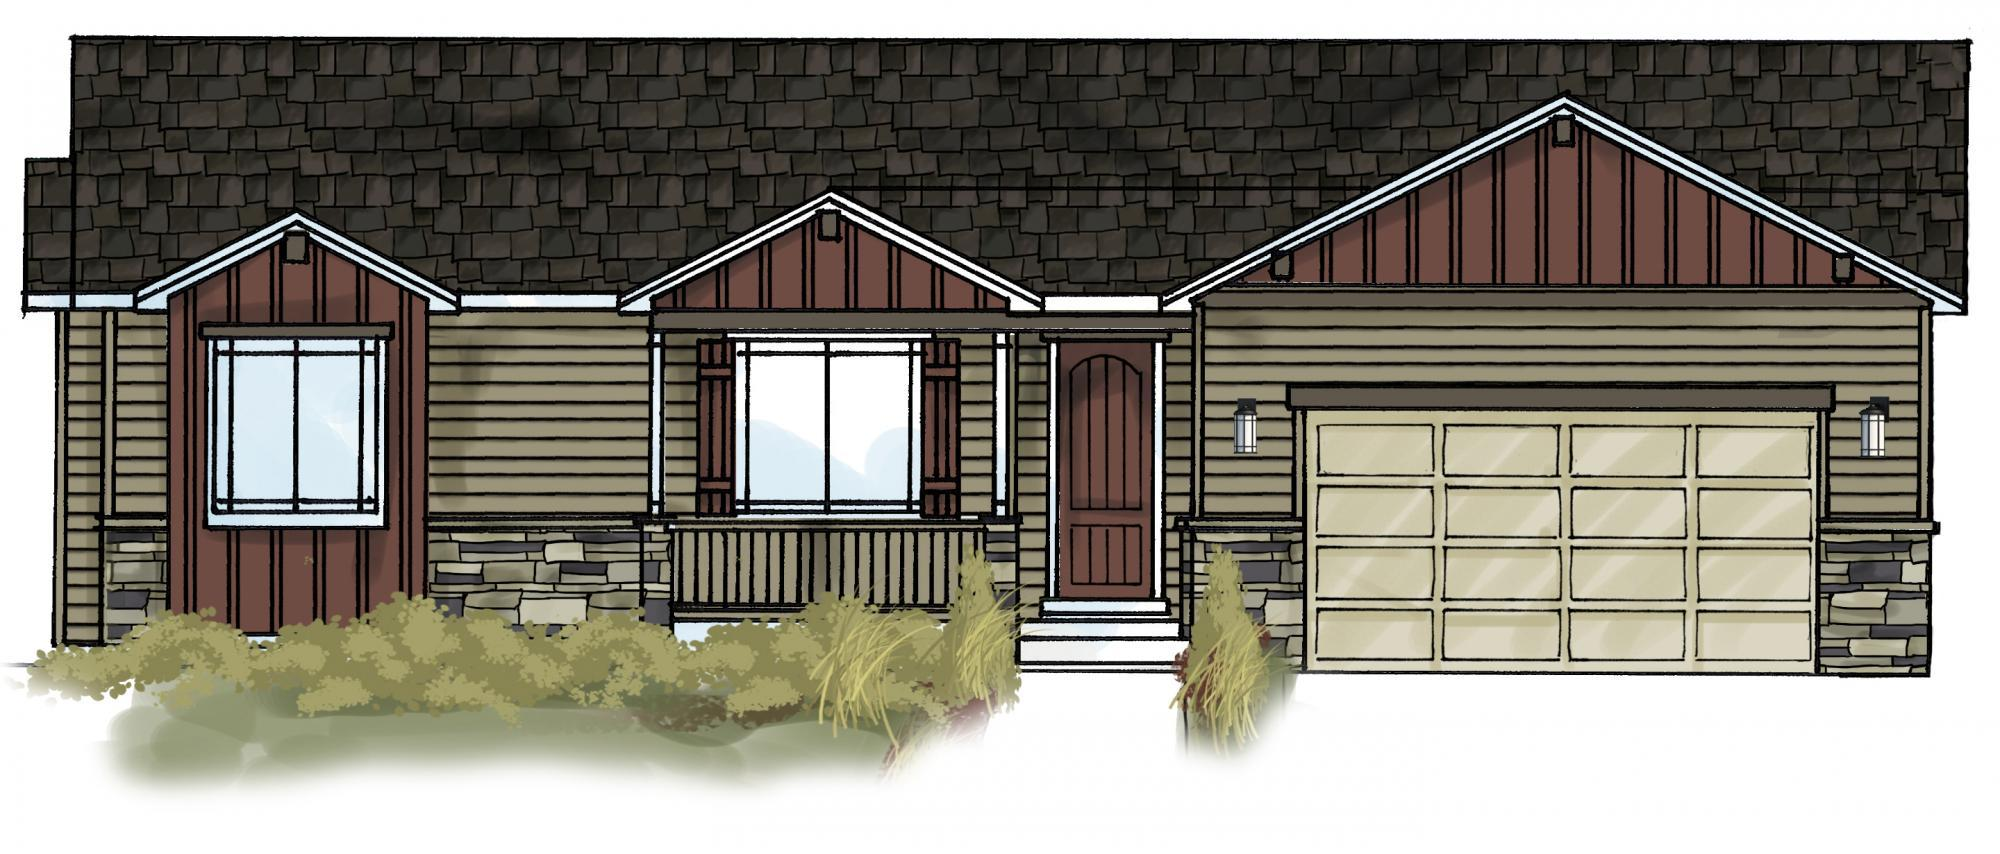 Single Family for Sale at Pelican Lake Ranch - The Ortobello Beebe Draw Farms Parkway Platteville, Colorado 80651 United States